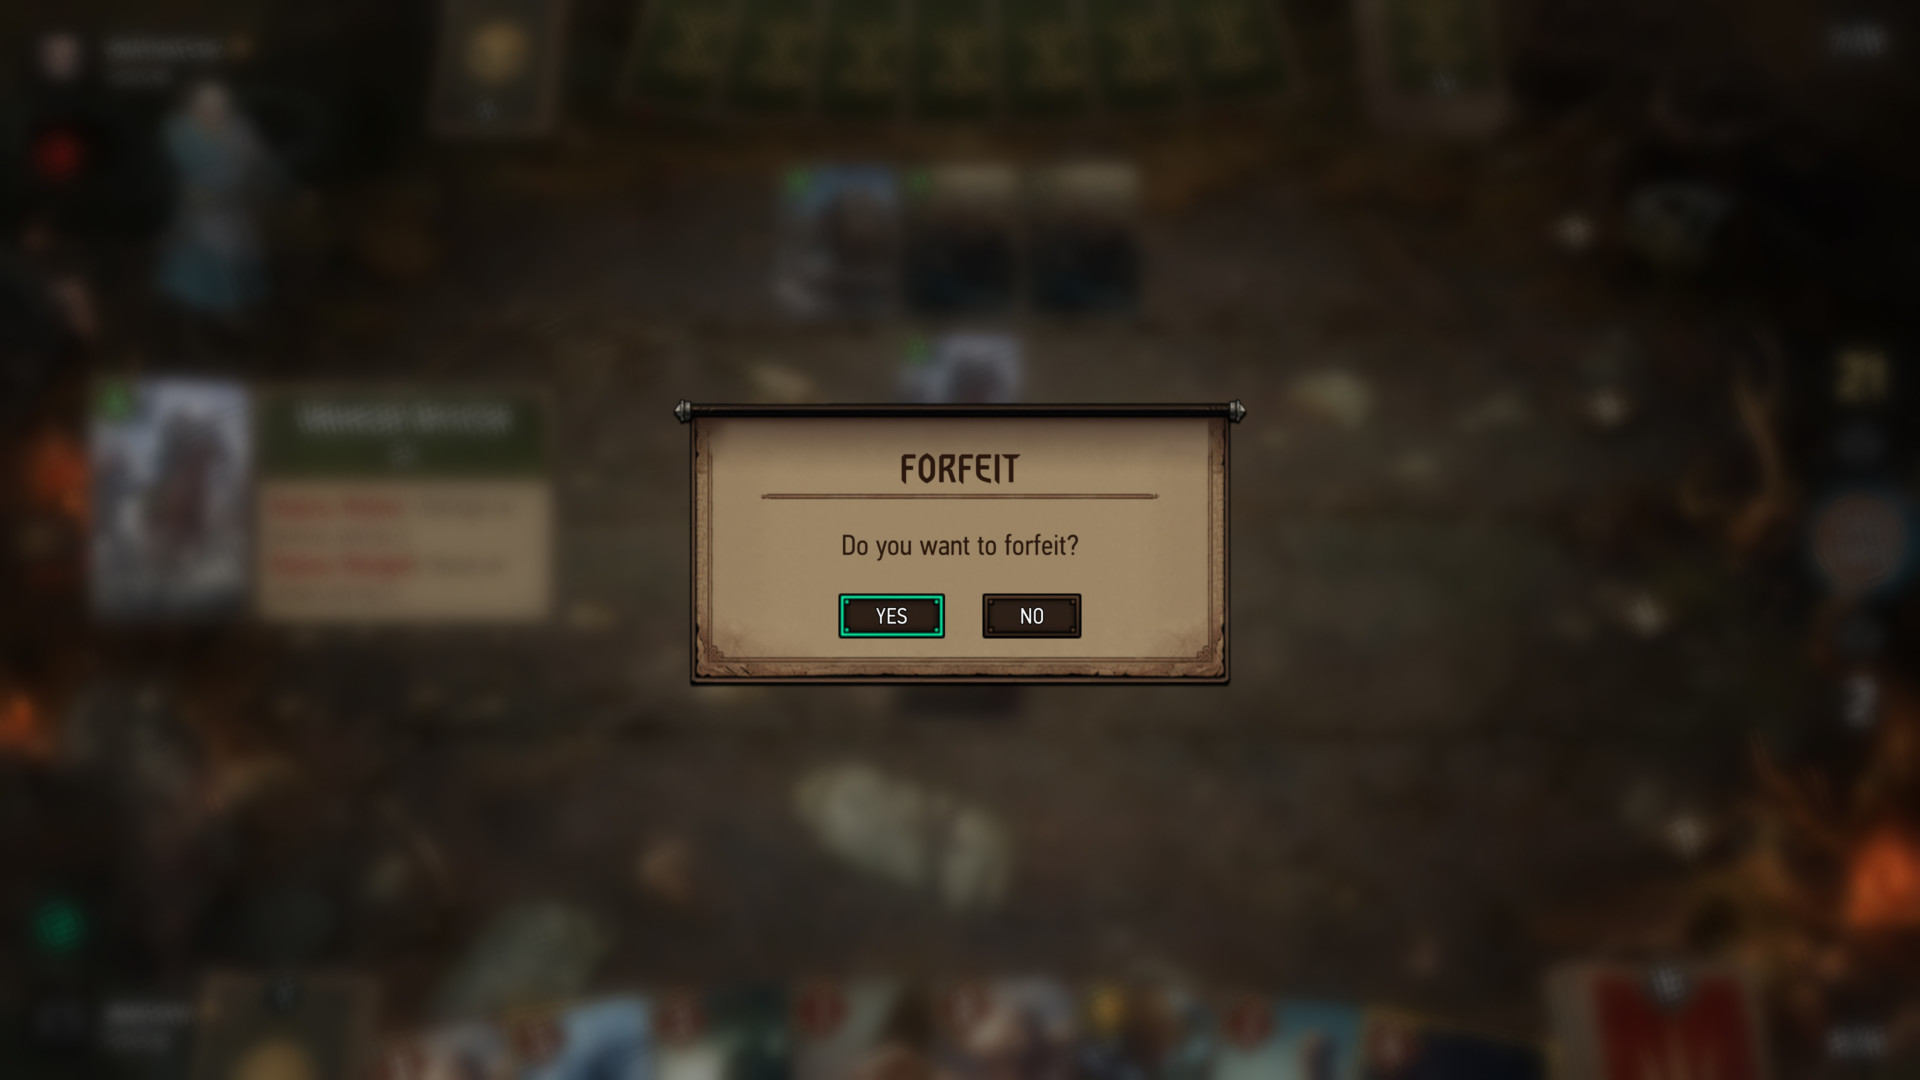 Forfeit screenshot of Gwent: The Witcher Card Game video game interface.